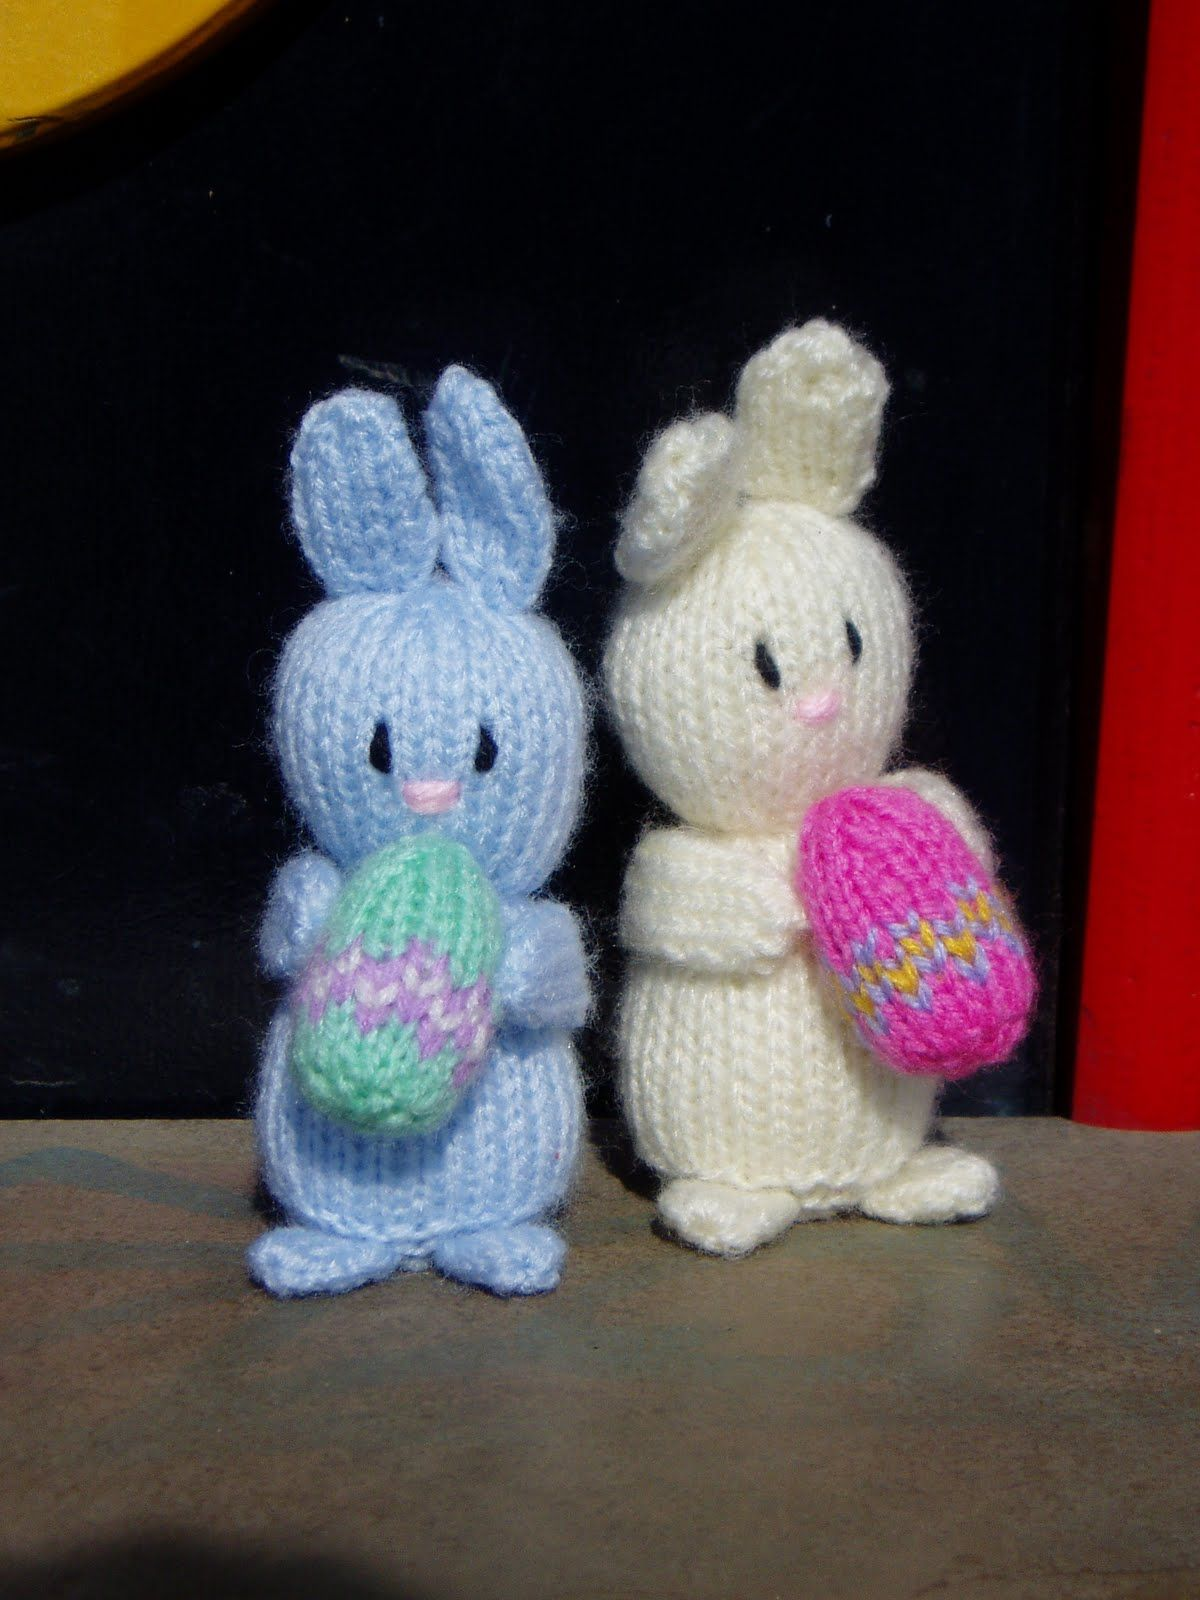 Knit easter bunny free pattern pdf click download now in blue knit easter bunny free pattern pdf click download now in blue letters http dt1010fo